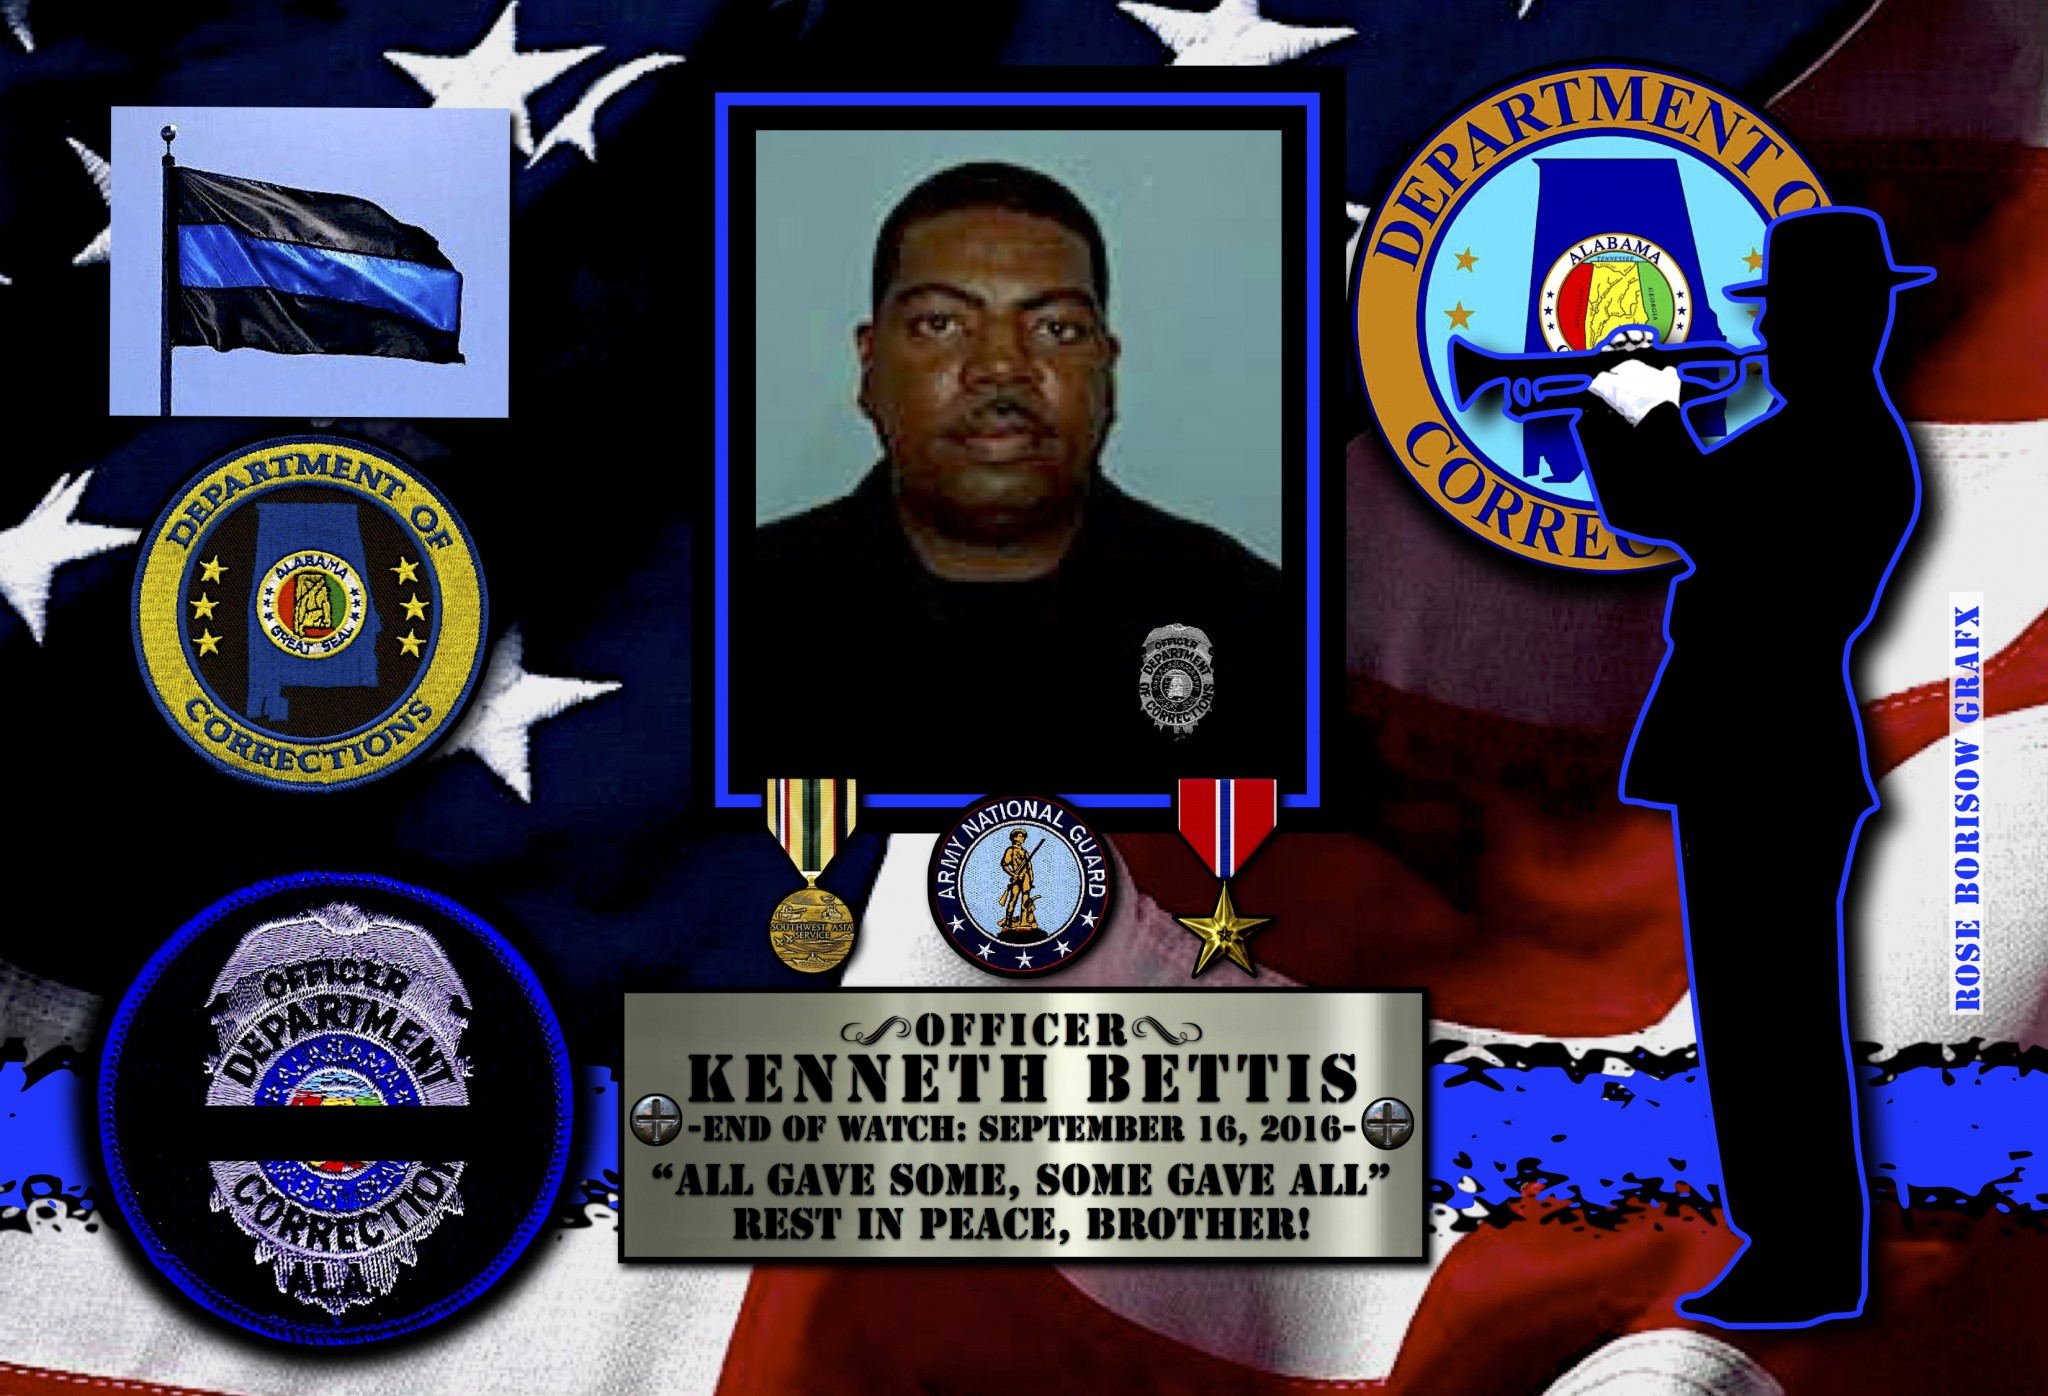 University Of South Alabama Jobs >> In Memoriam: Corrections Officer Kenneth Bettis - Law ...